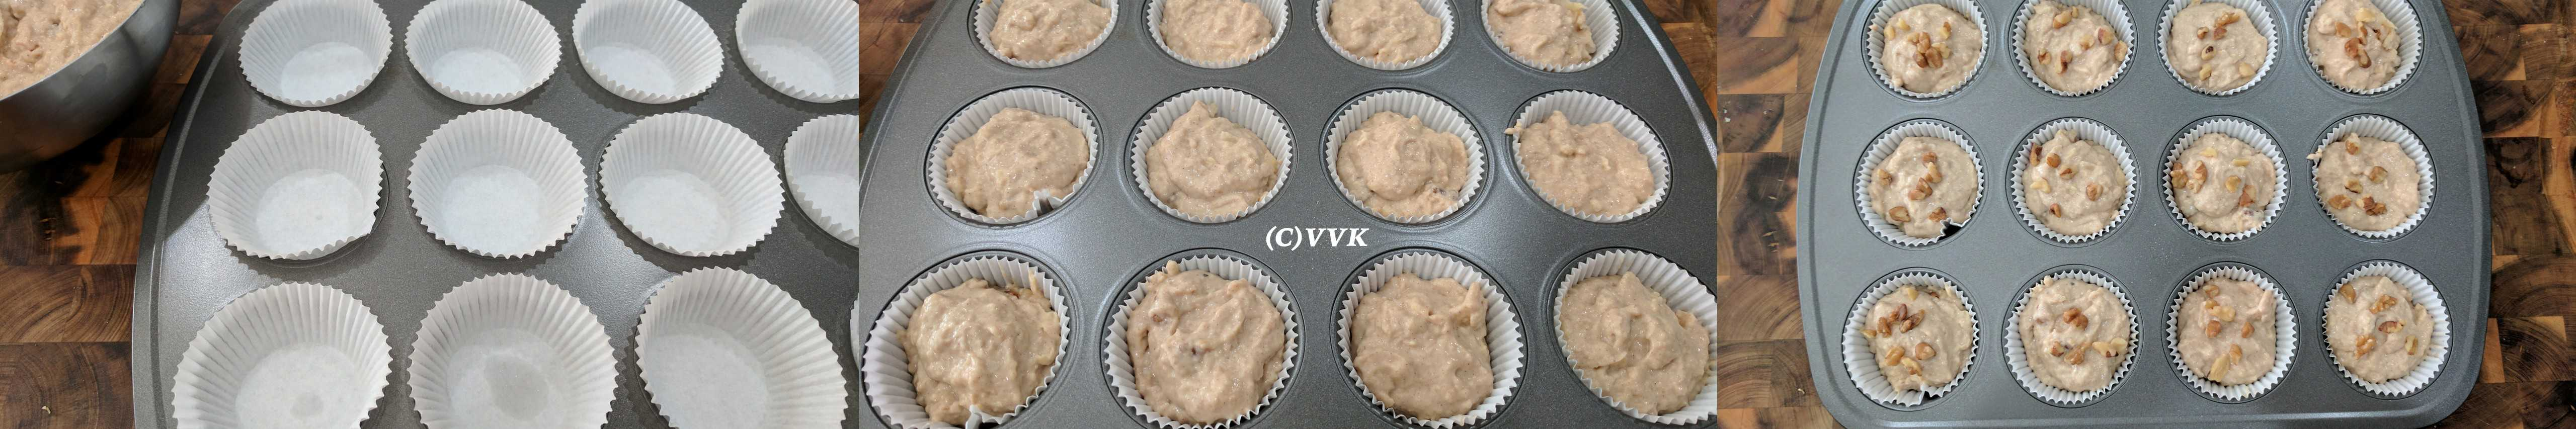 Dividing the batter into the muffin tin and adding more nuts on top.